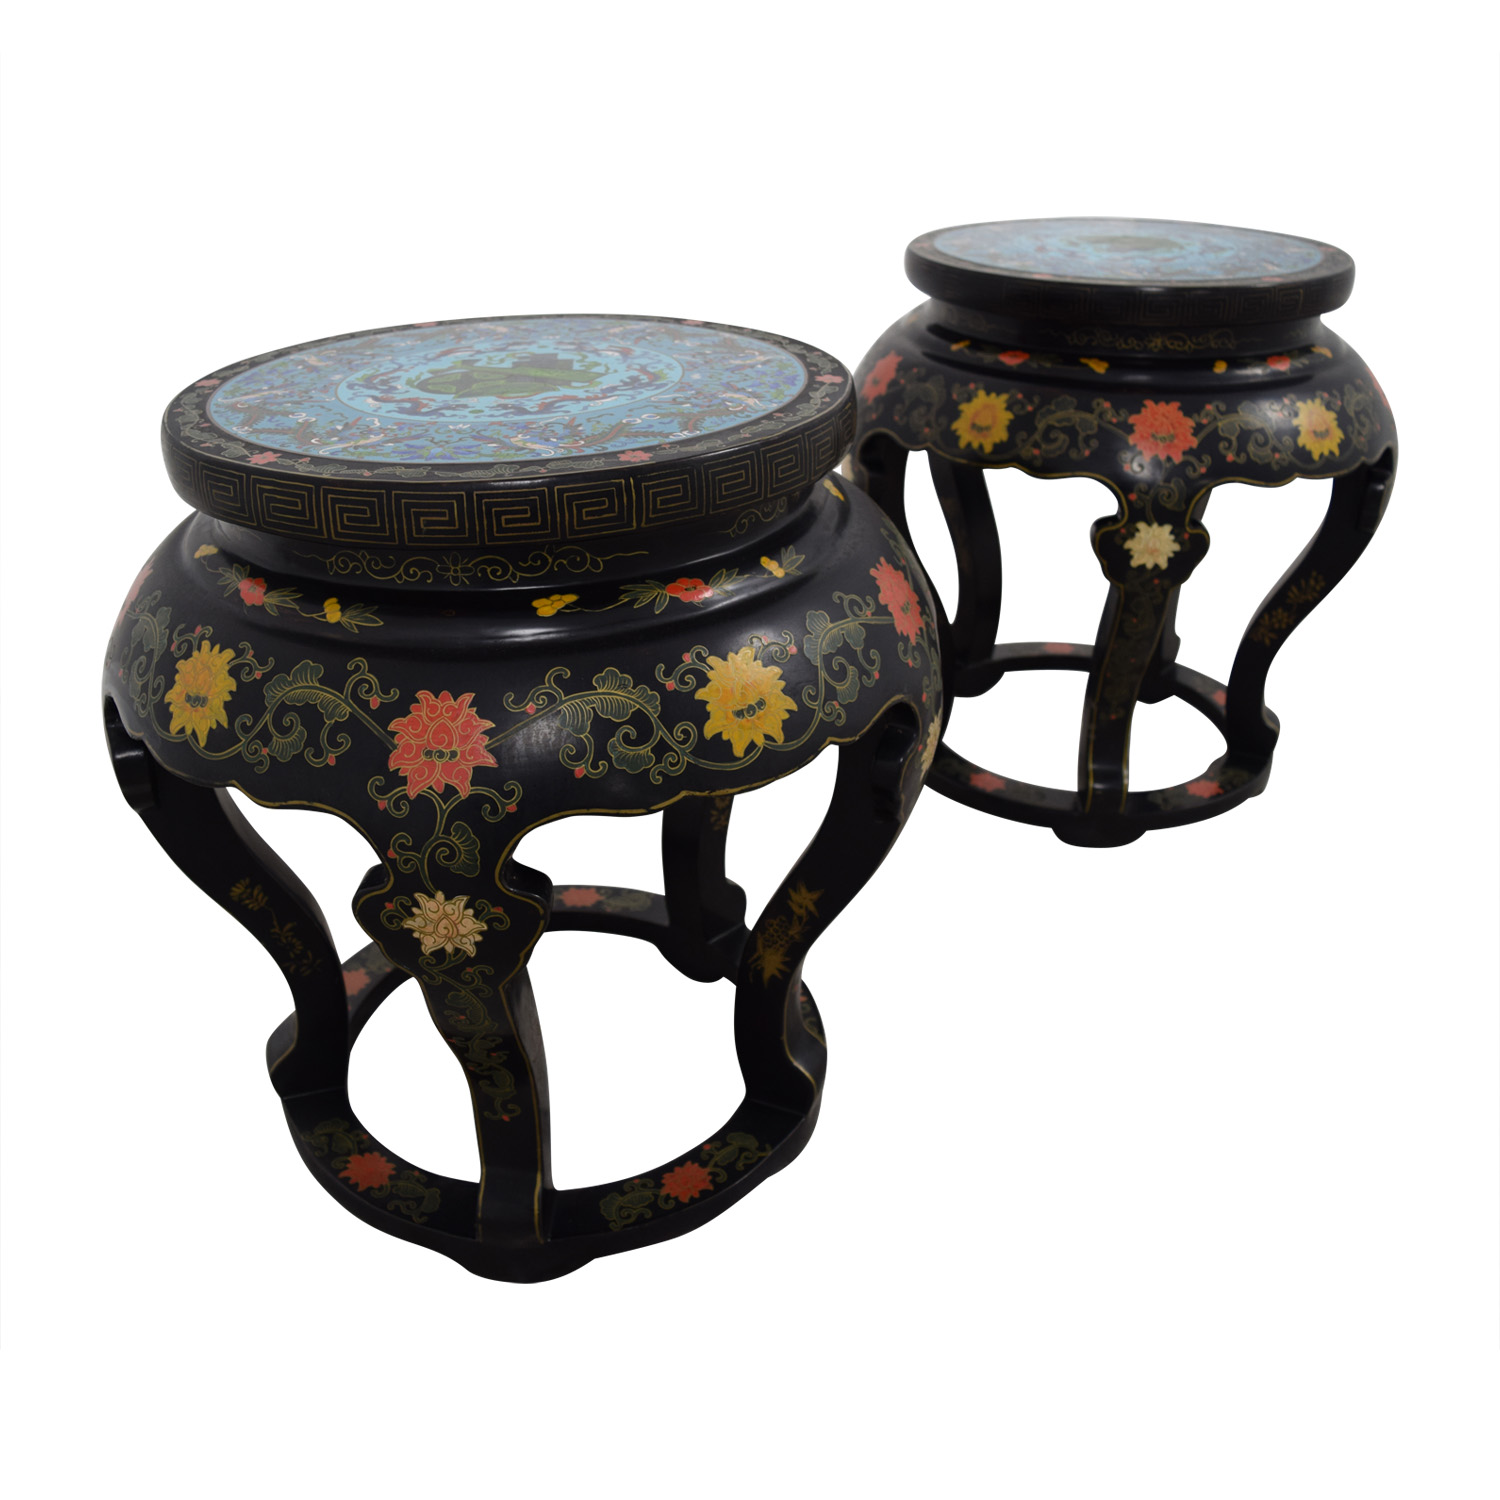 Antique Chinese Round Tables with Cloisonne Top nj